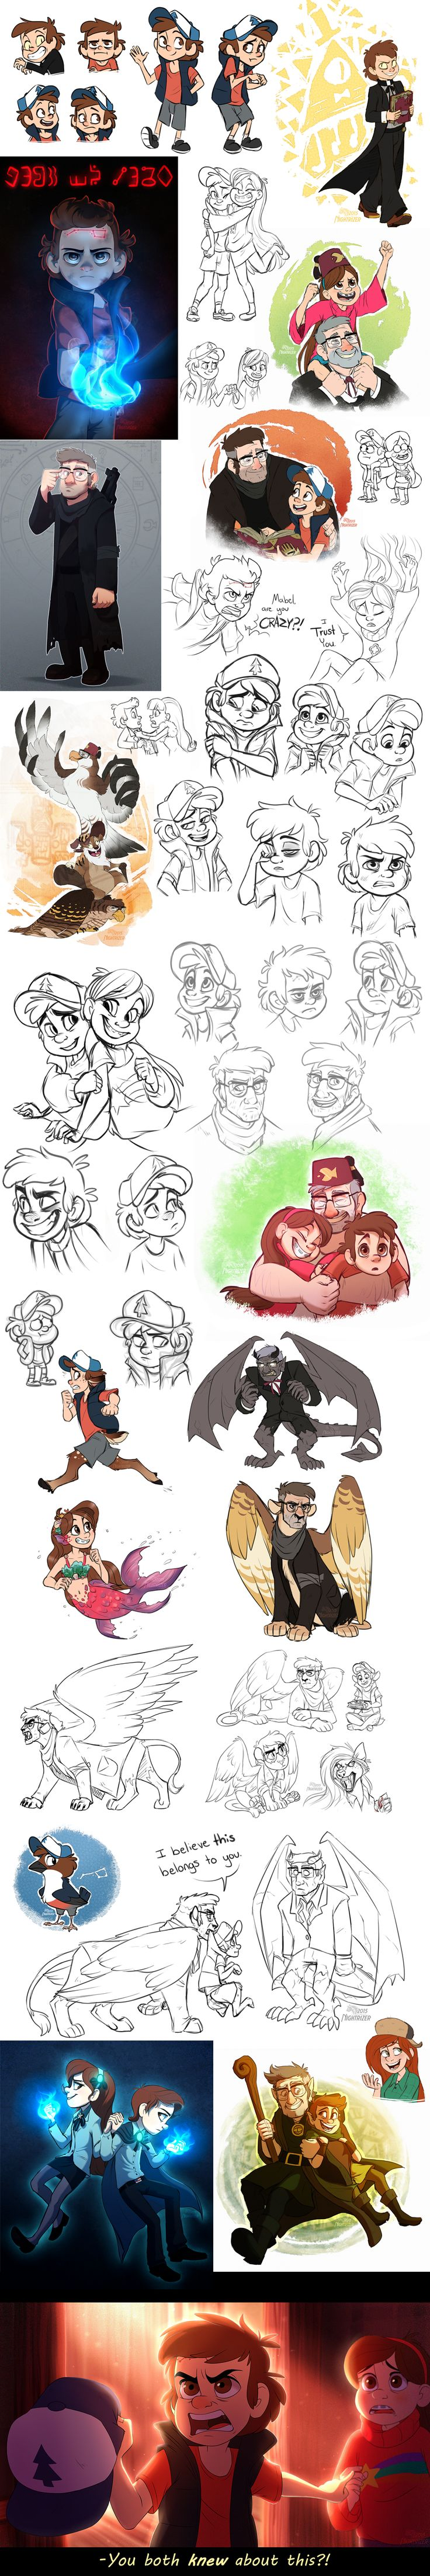 Gravity Falls Art Dump by Nightrizer.deviantart.com on @DeviantArt